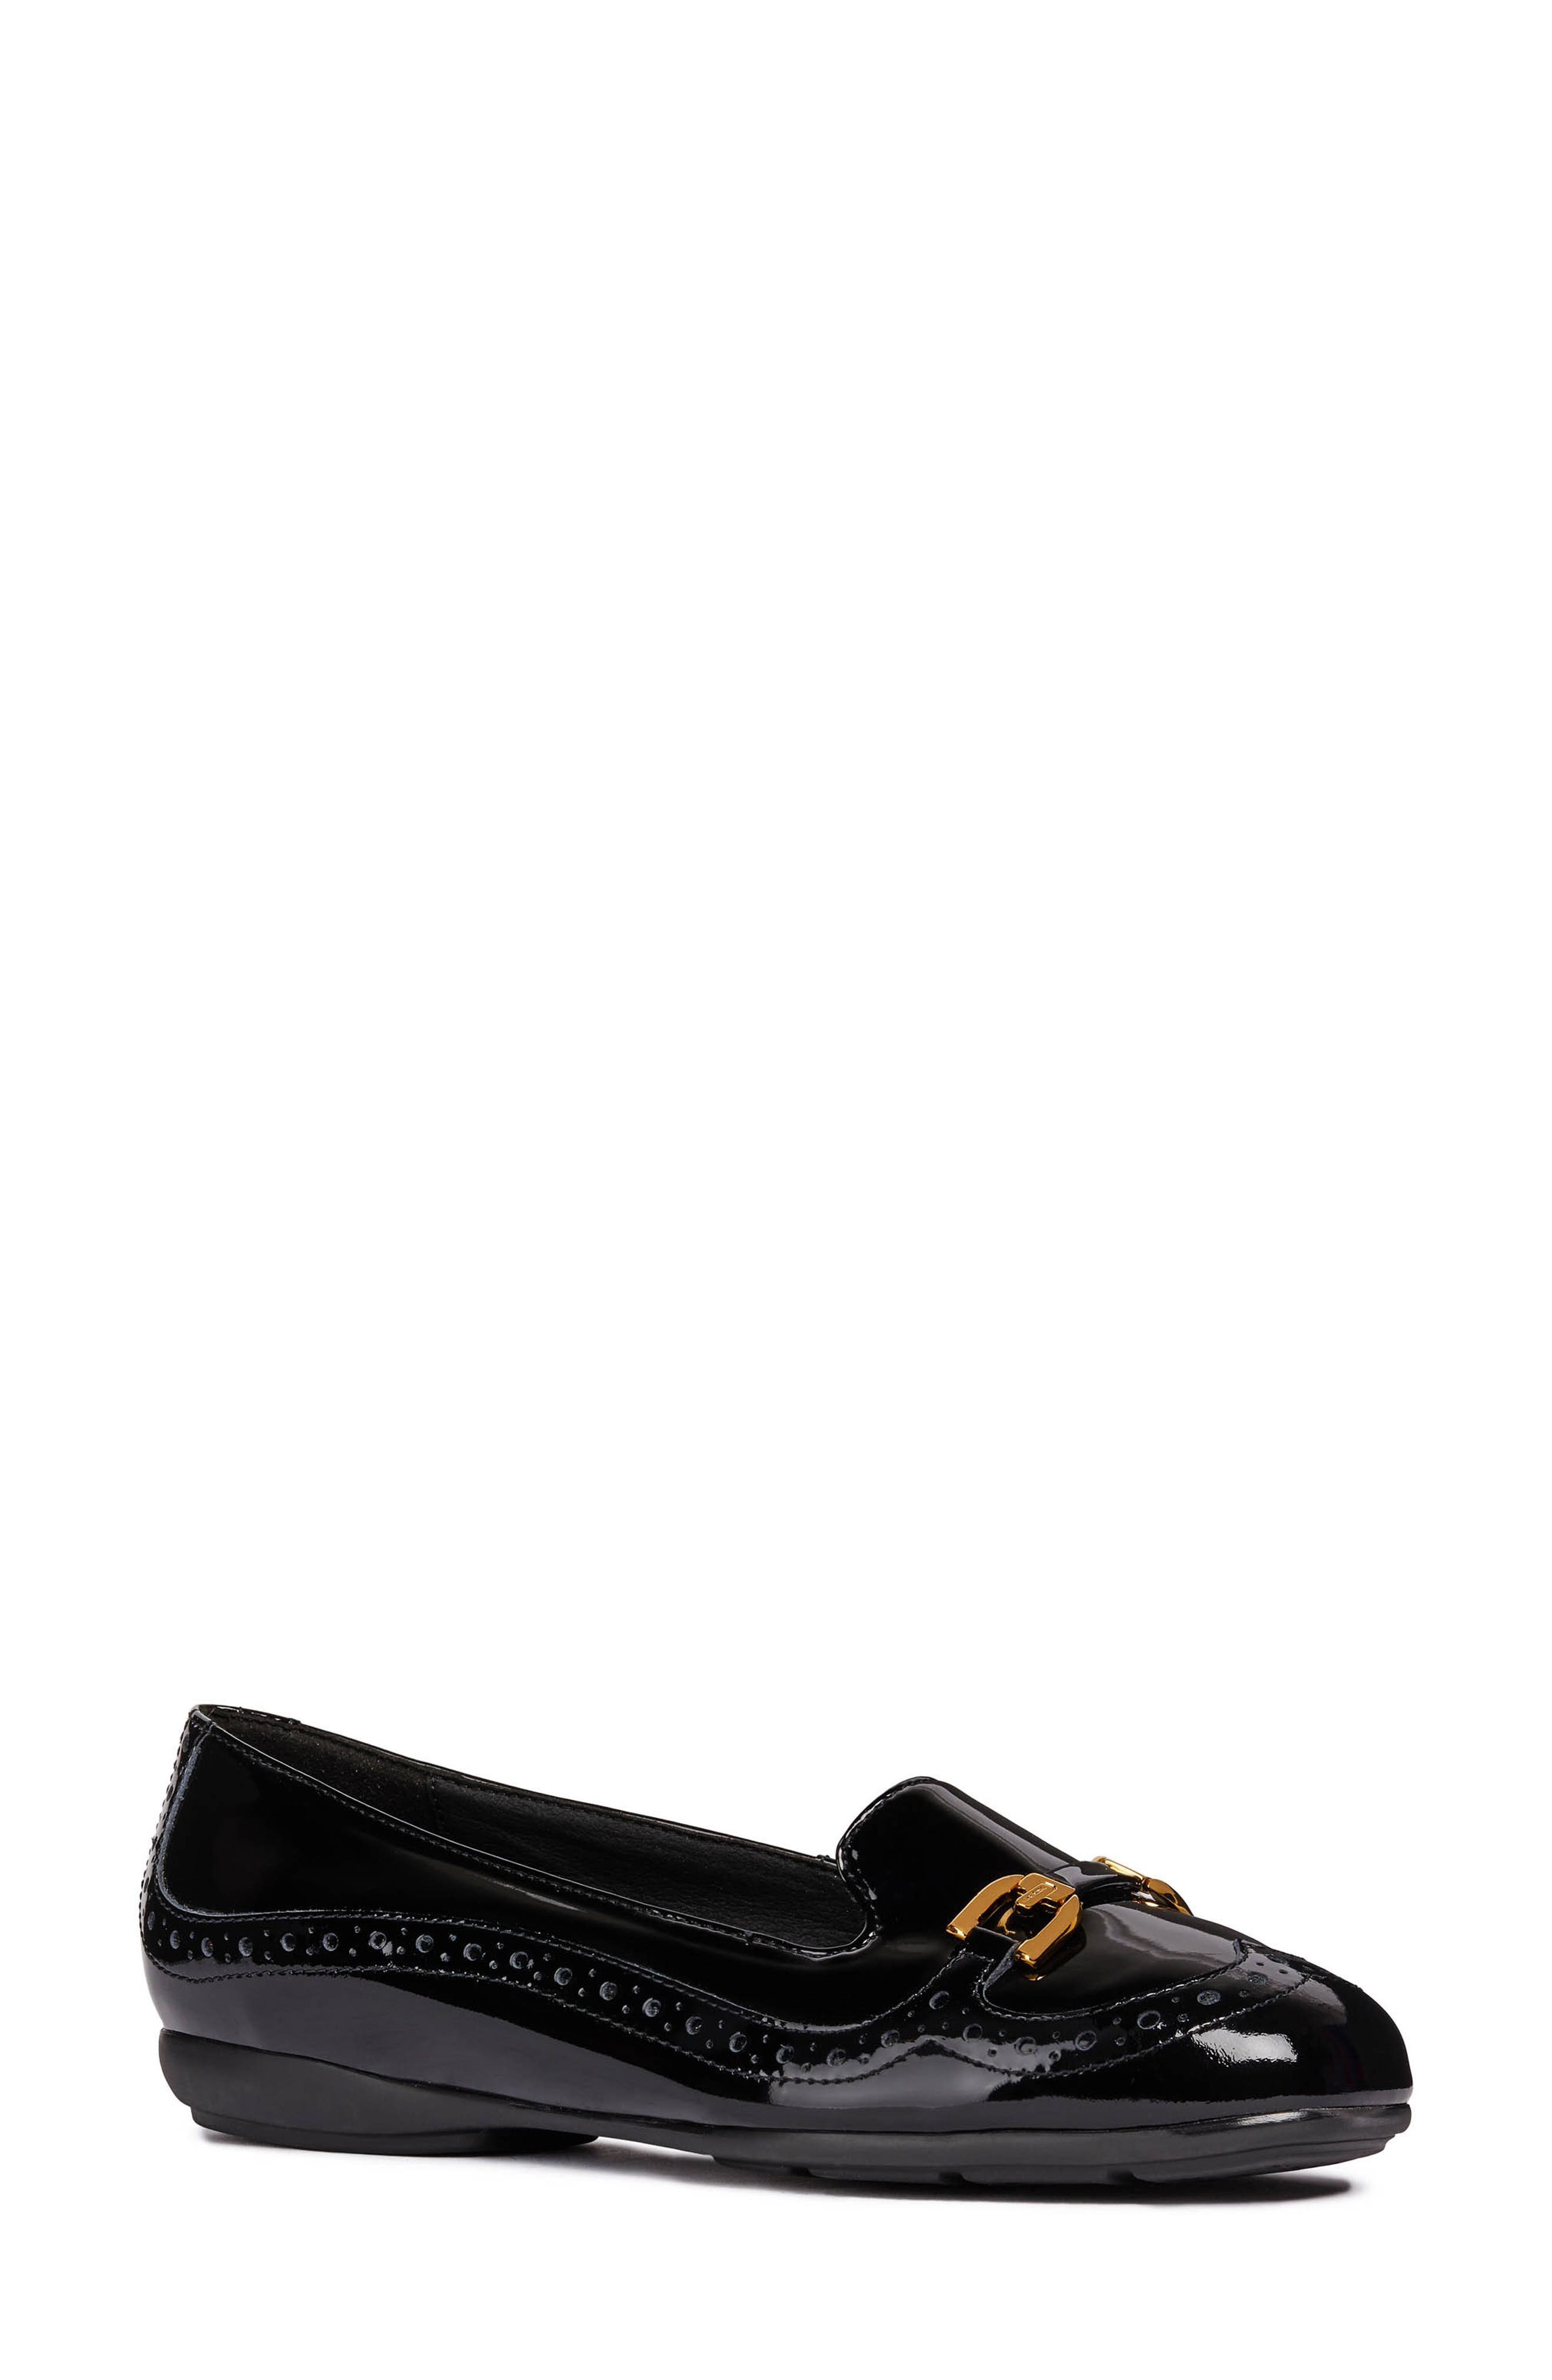 Annytah Loafer,                         Main,                         color, BLACK FAUX PATENT LEATHER